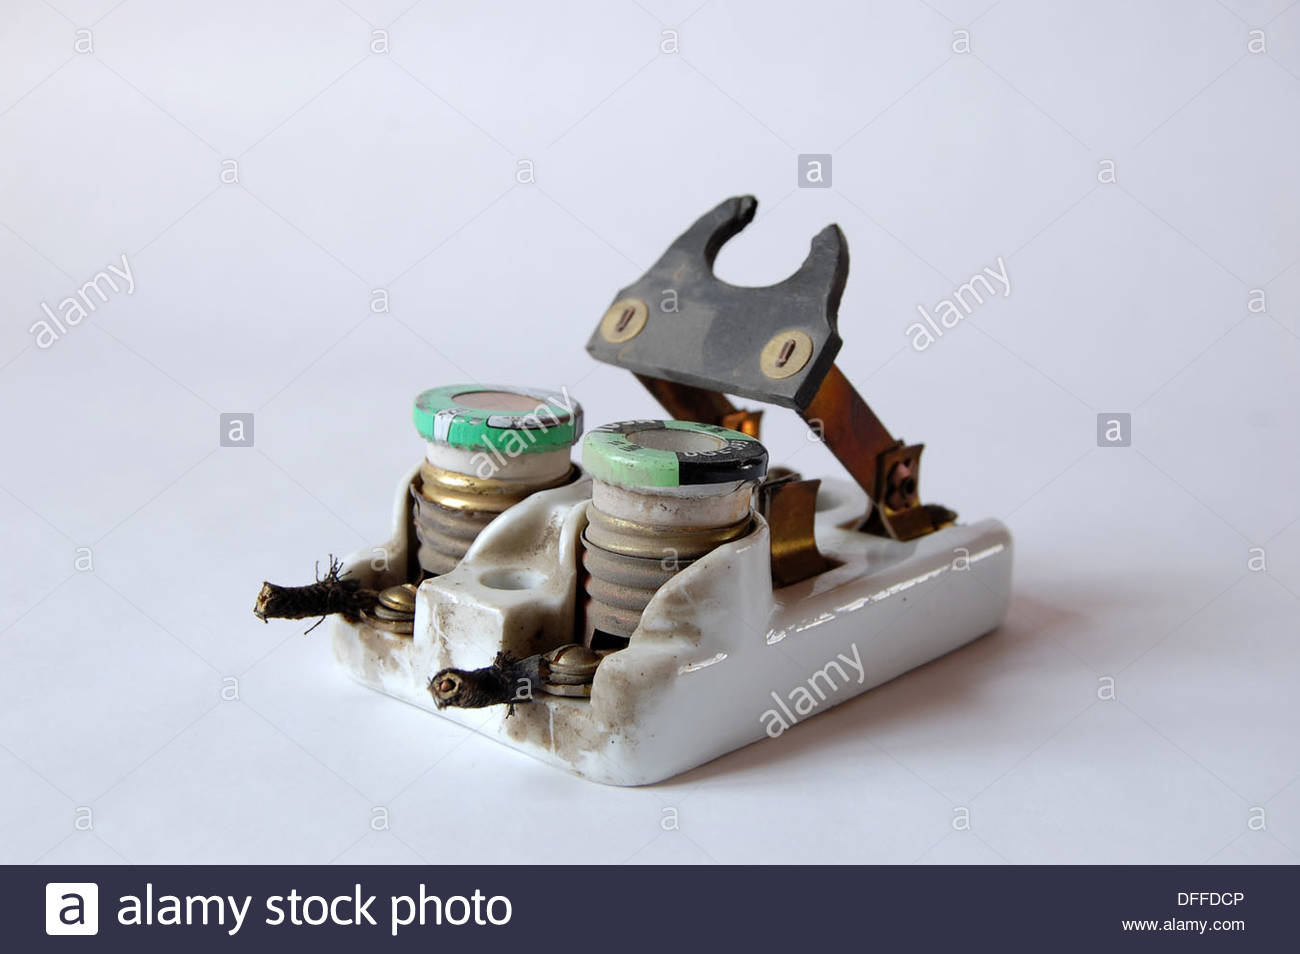 1950s vintage ceramic fuse box electrical circuit breaker with fuses and  knife switch plain background natural light closeup